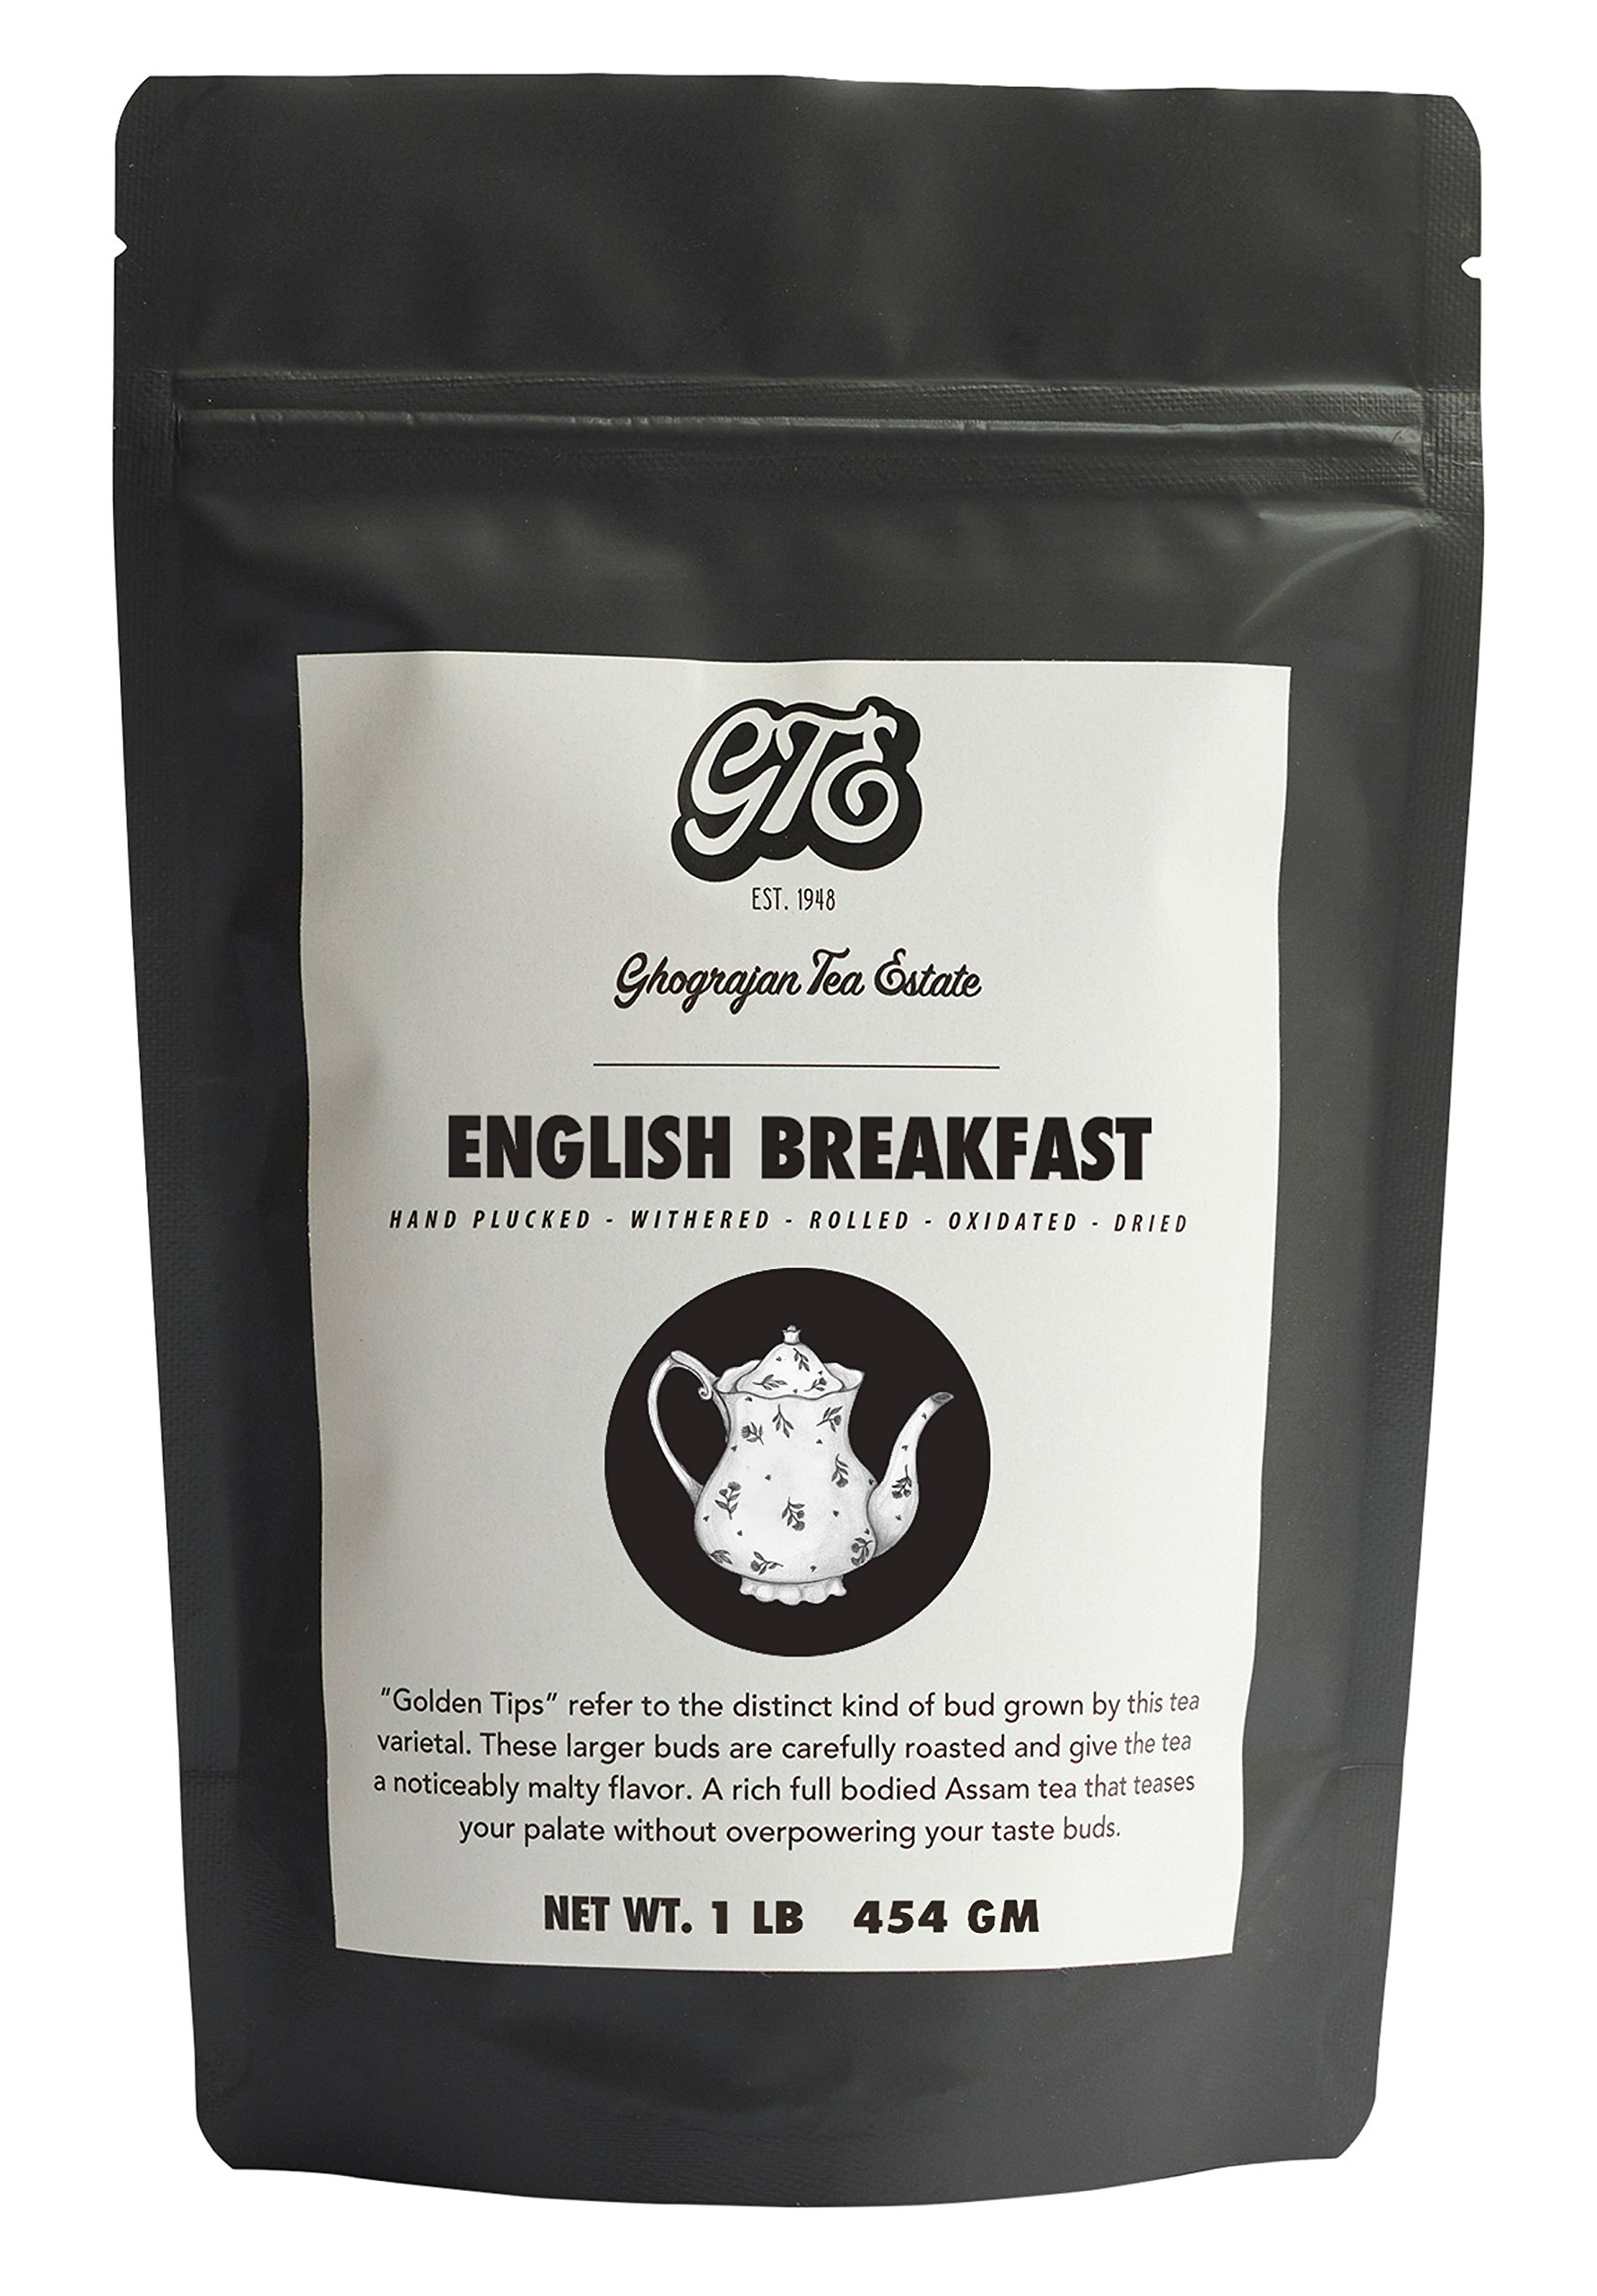 English Breakfast Loose Leaf Black Tea (200+ Servings) - 2019 Harvest - Strong Full Bodied Whole Leaf Assam Black Tea - Farm2Cup from 5th Generation Tea Farm - Bulk Pack - 1 Pound Sealable Pouch